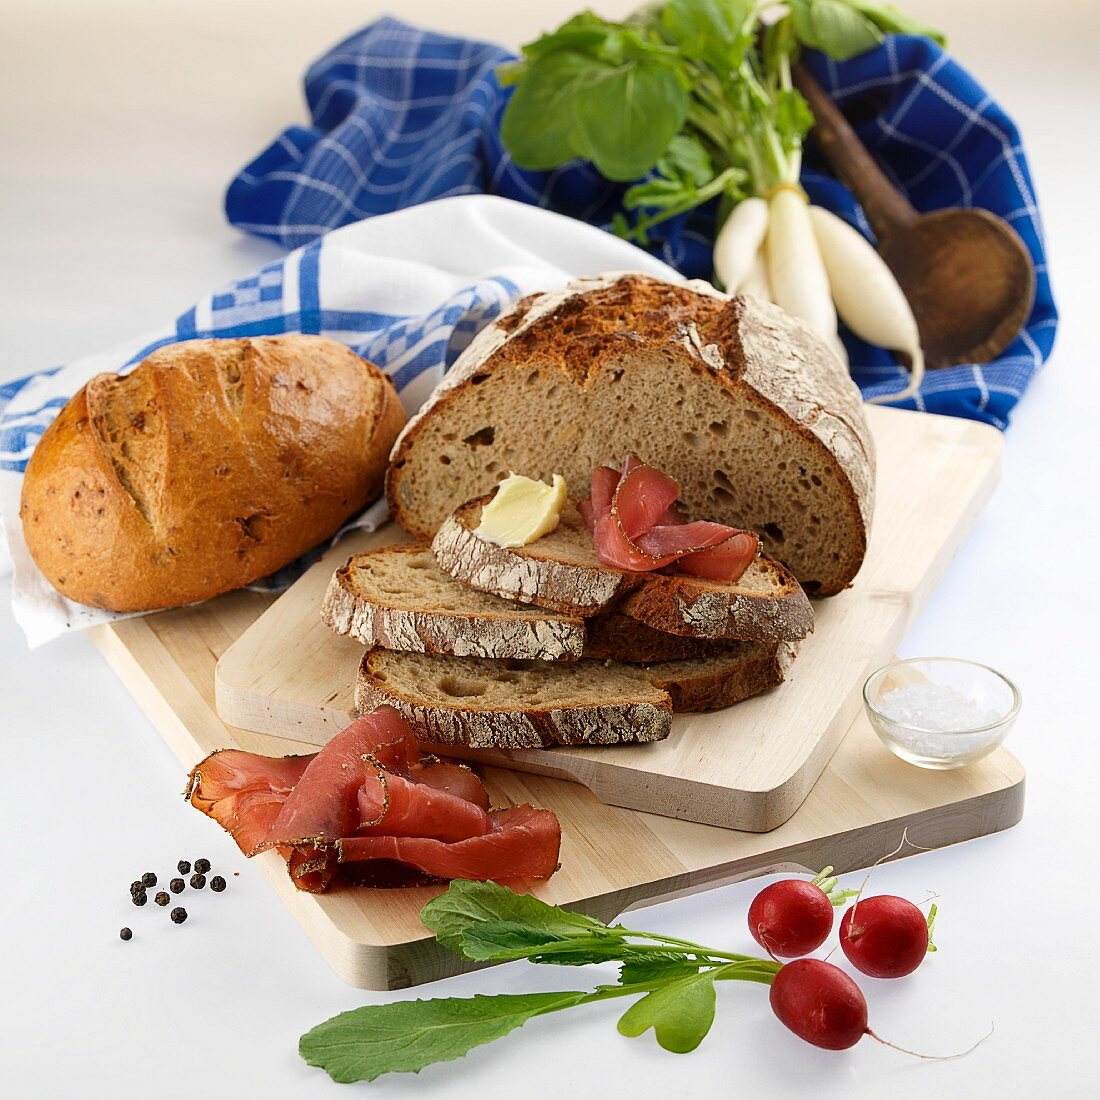 Bread and ingredients for supper